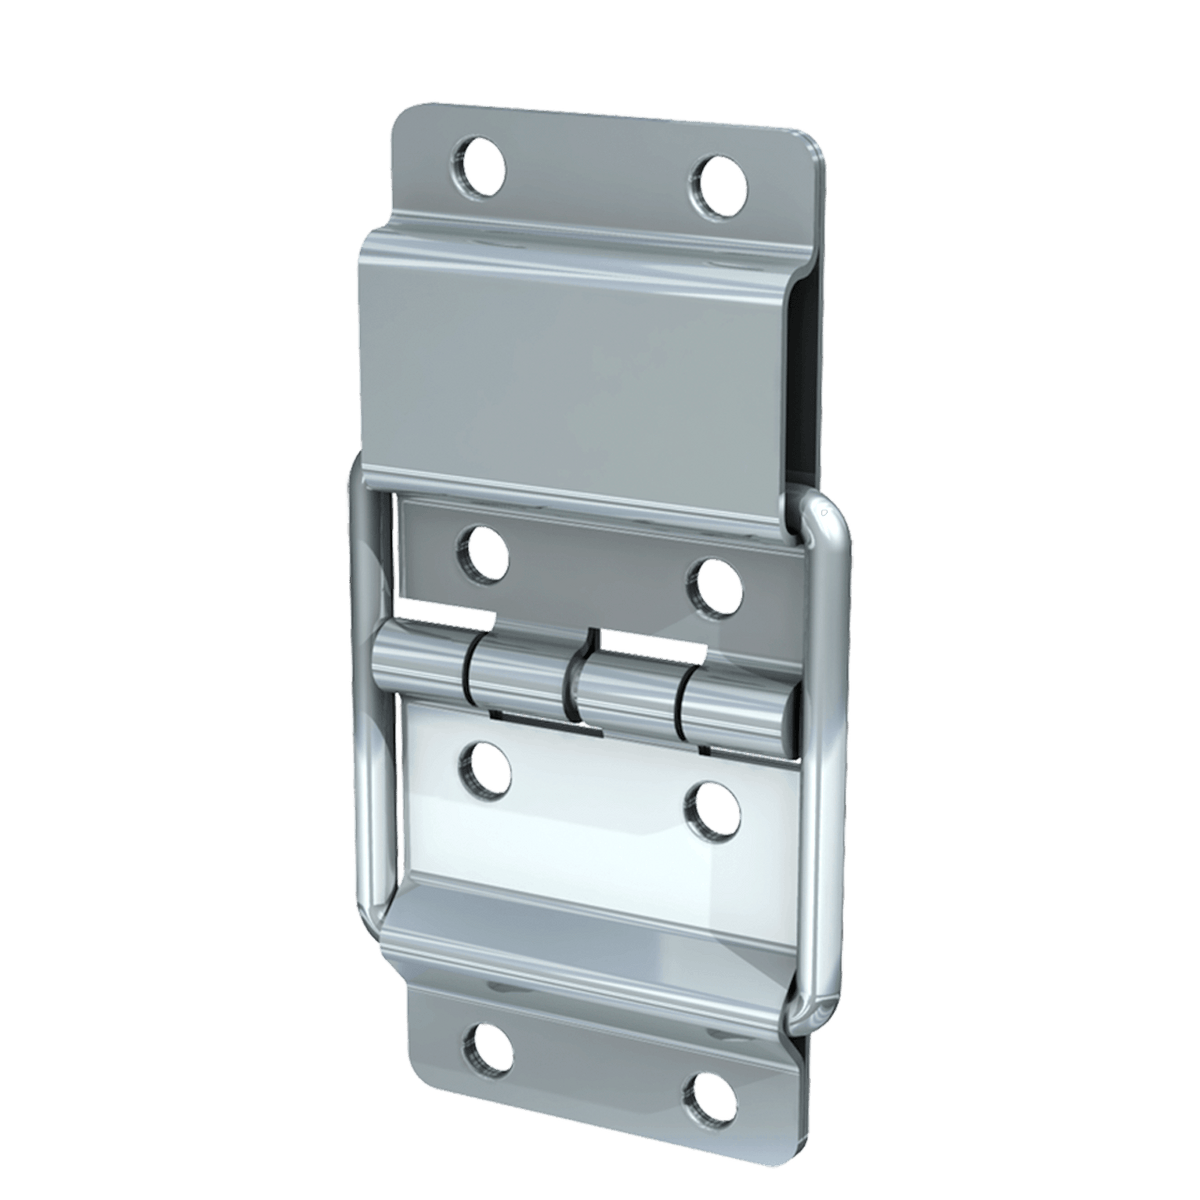 Medium Stop Hinge, 3/4 view